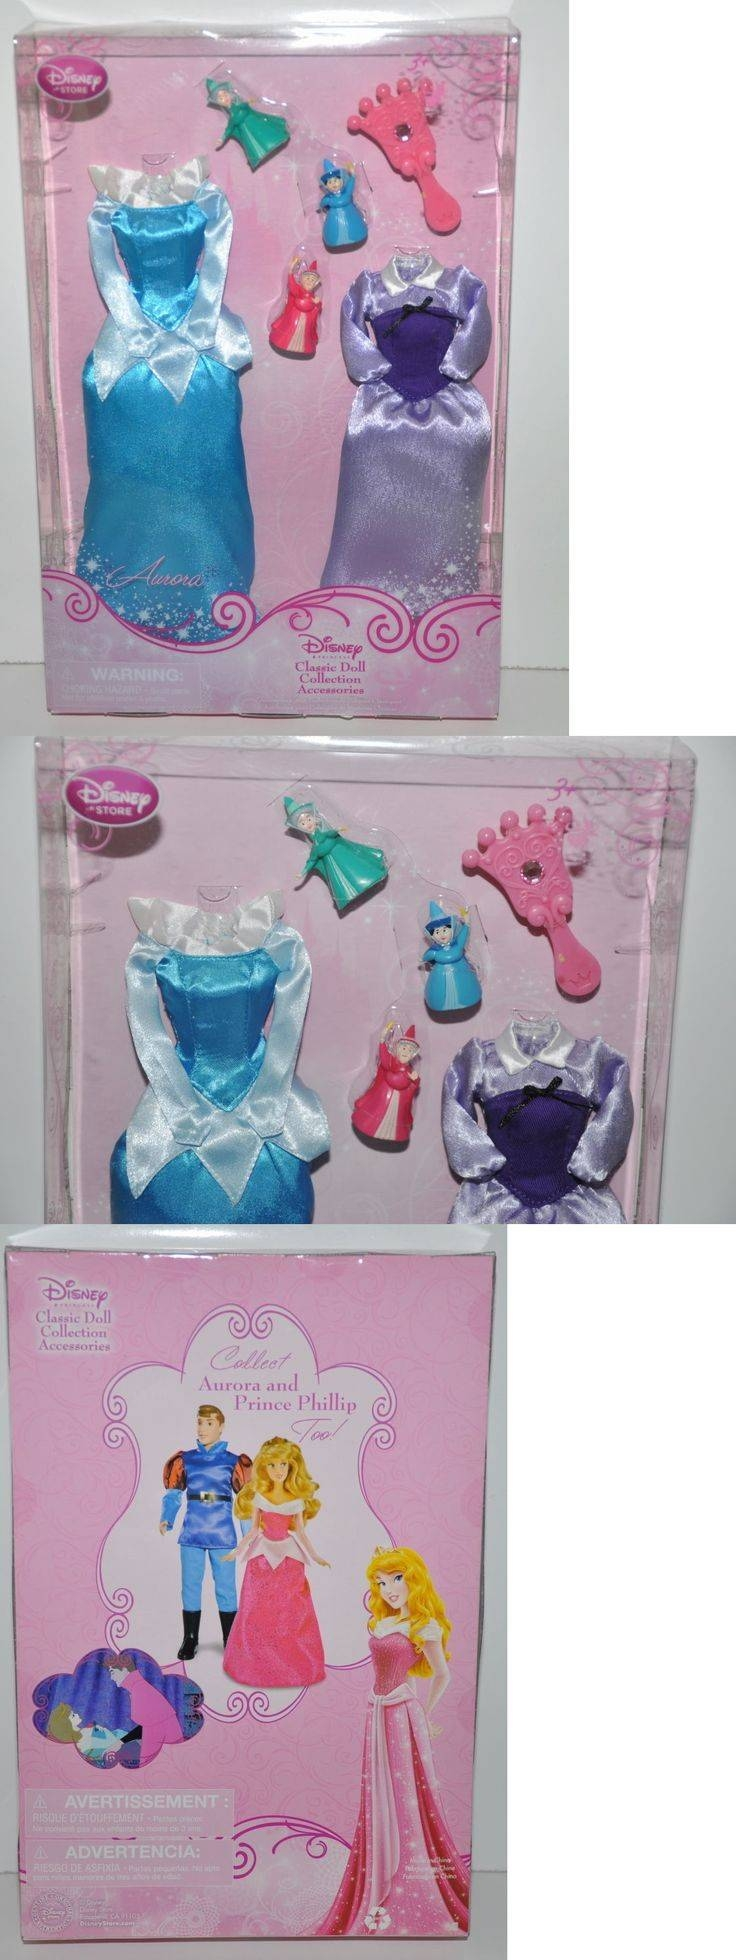 The 25+ Best Disney Princess Doll Collection Ideas On Pinterest pertaining to Princess Wardrobes (Image 15 of 15)